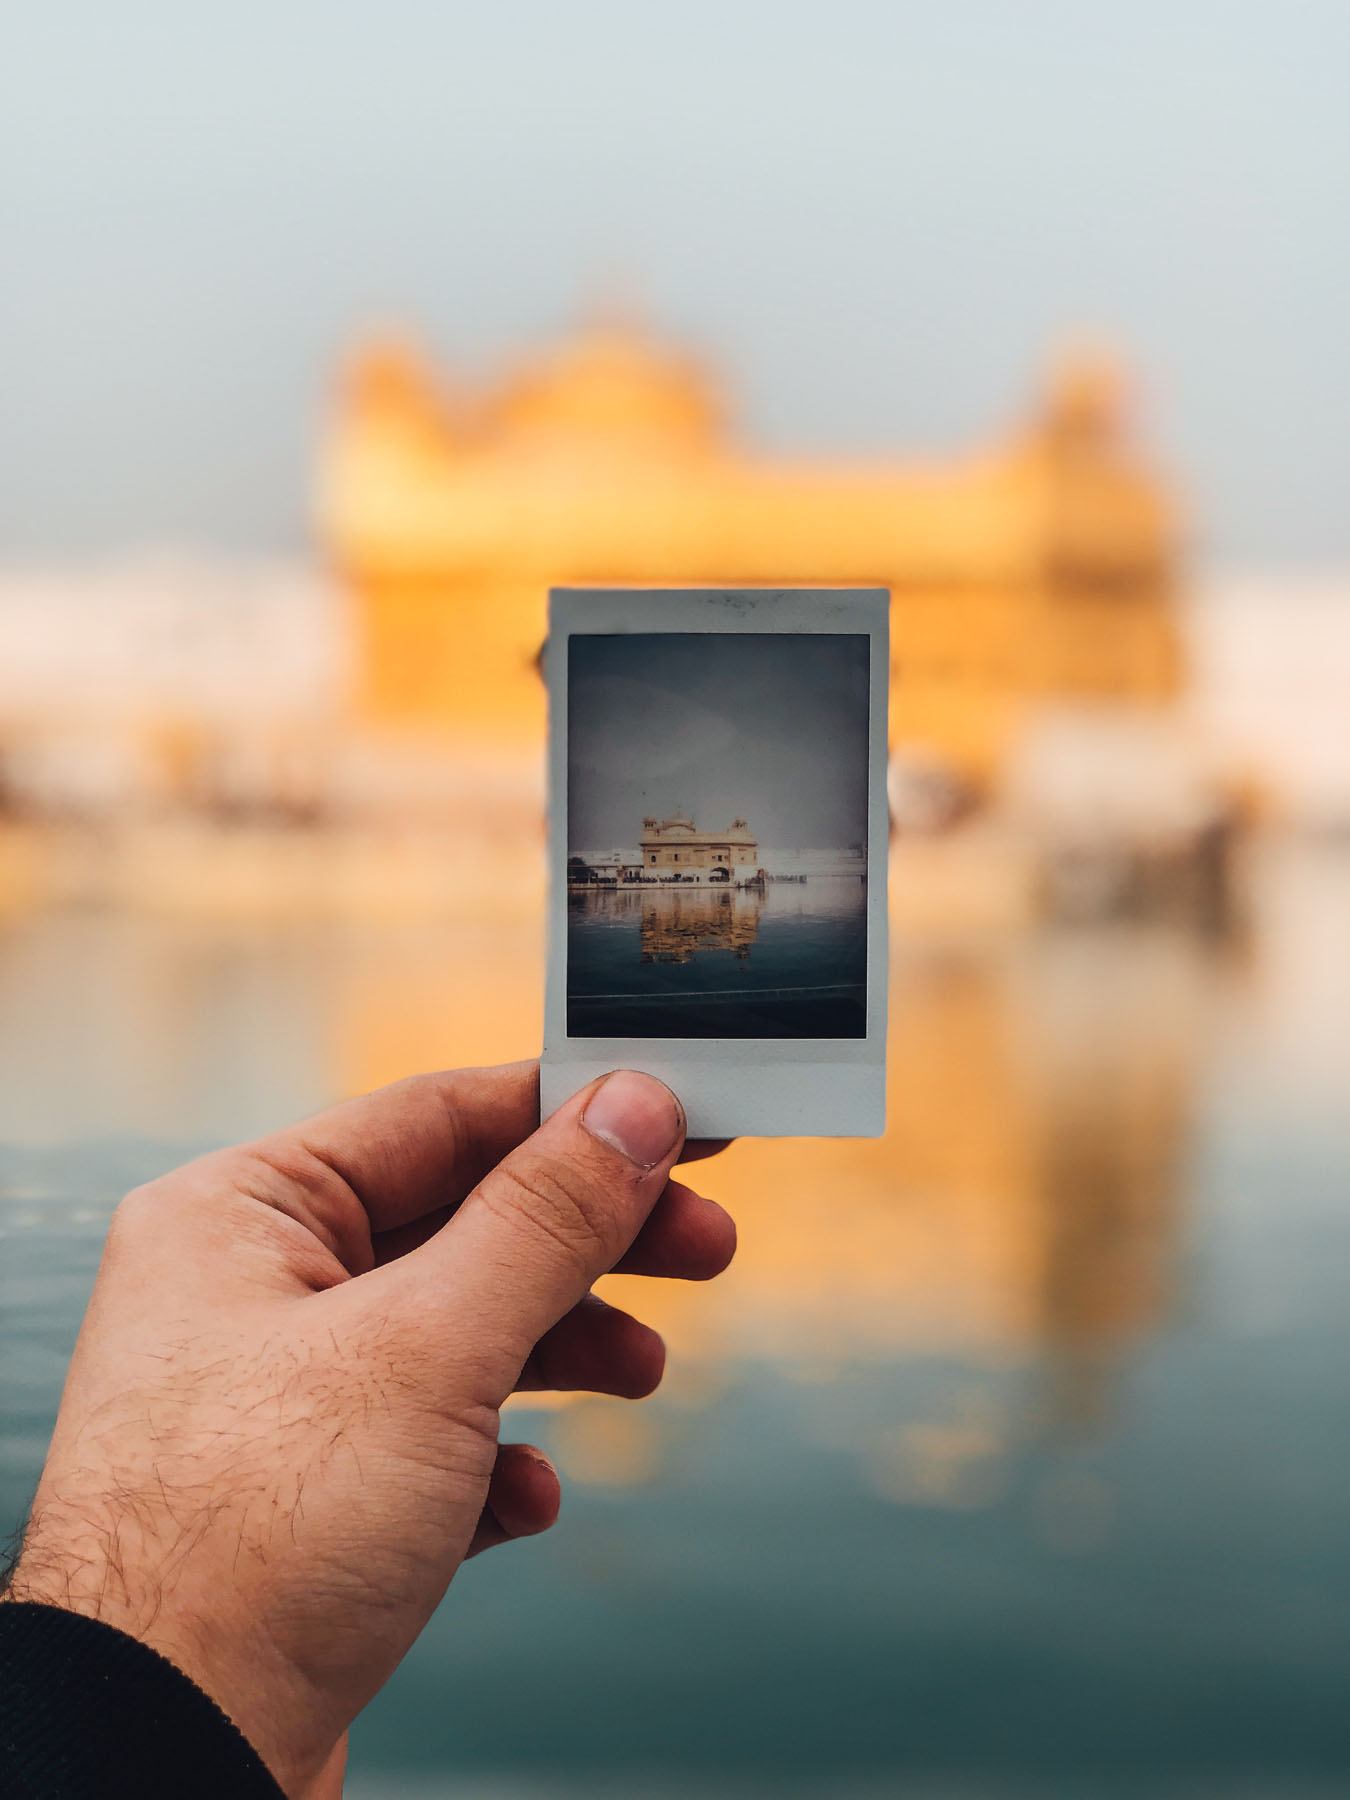 Holding more than just captured memories.